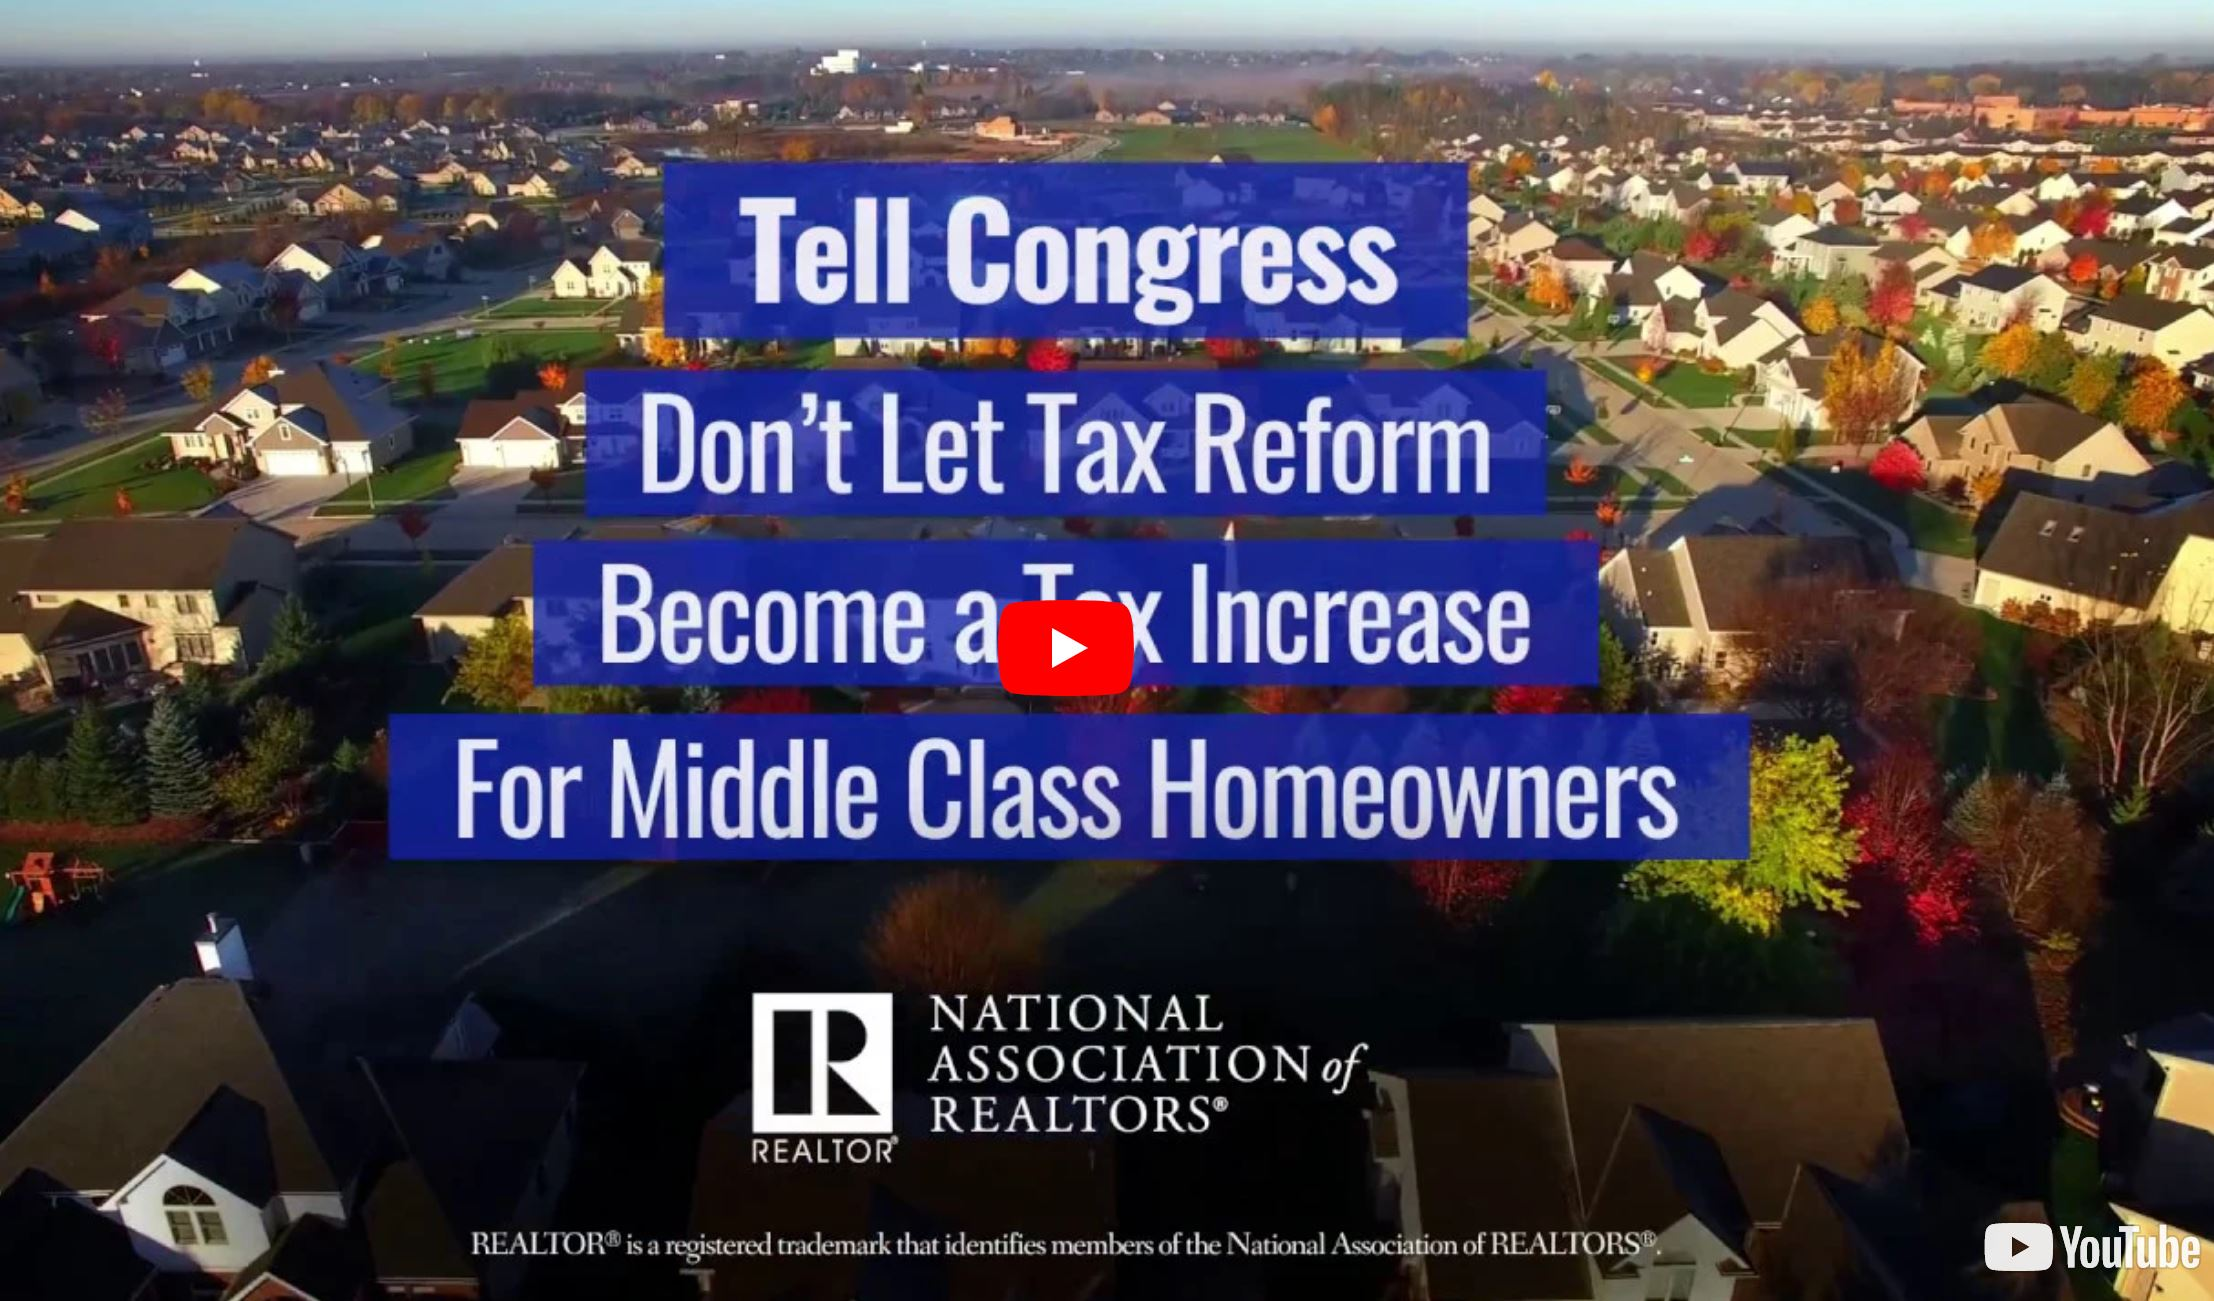 TAKE ACTION: Oppose Tax Reform Bills before they Become Law